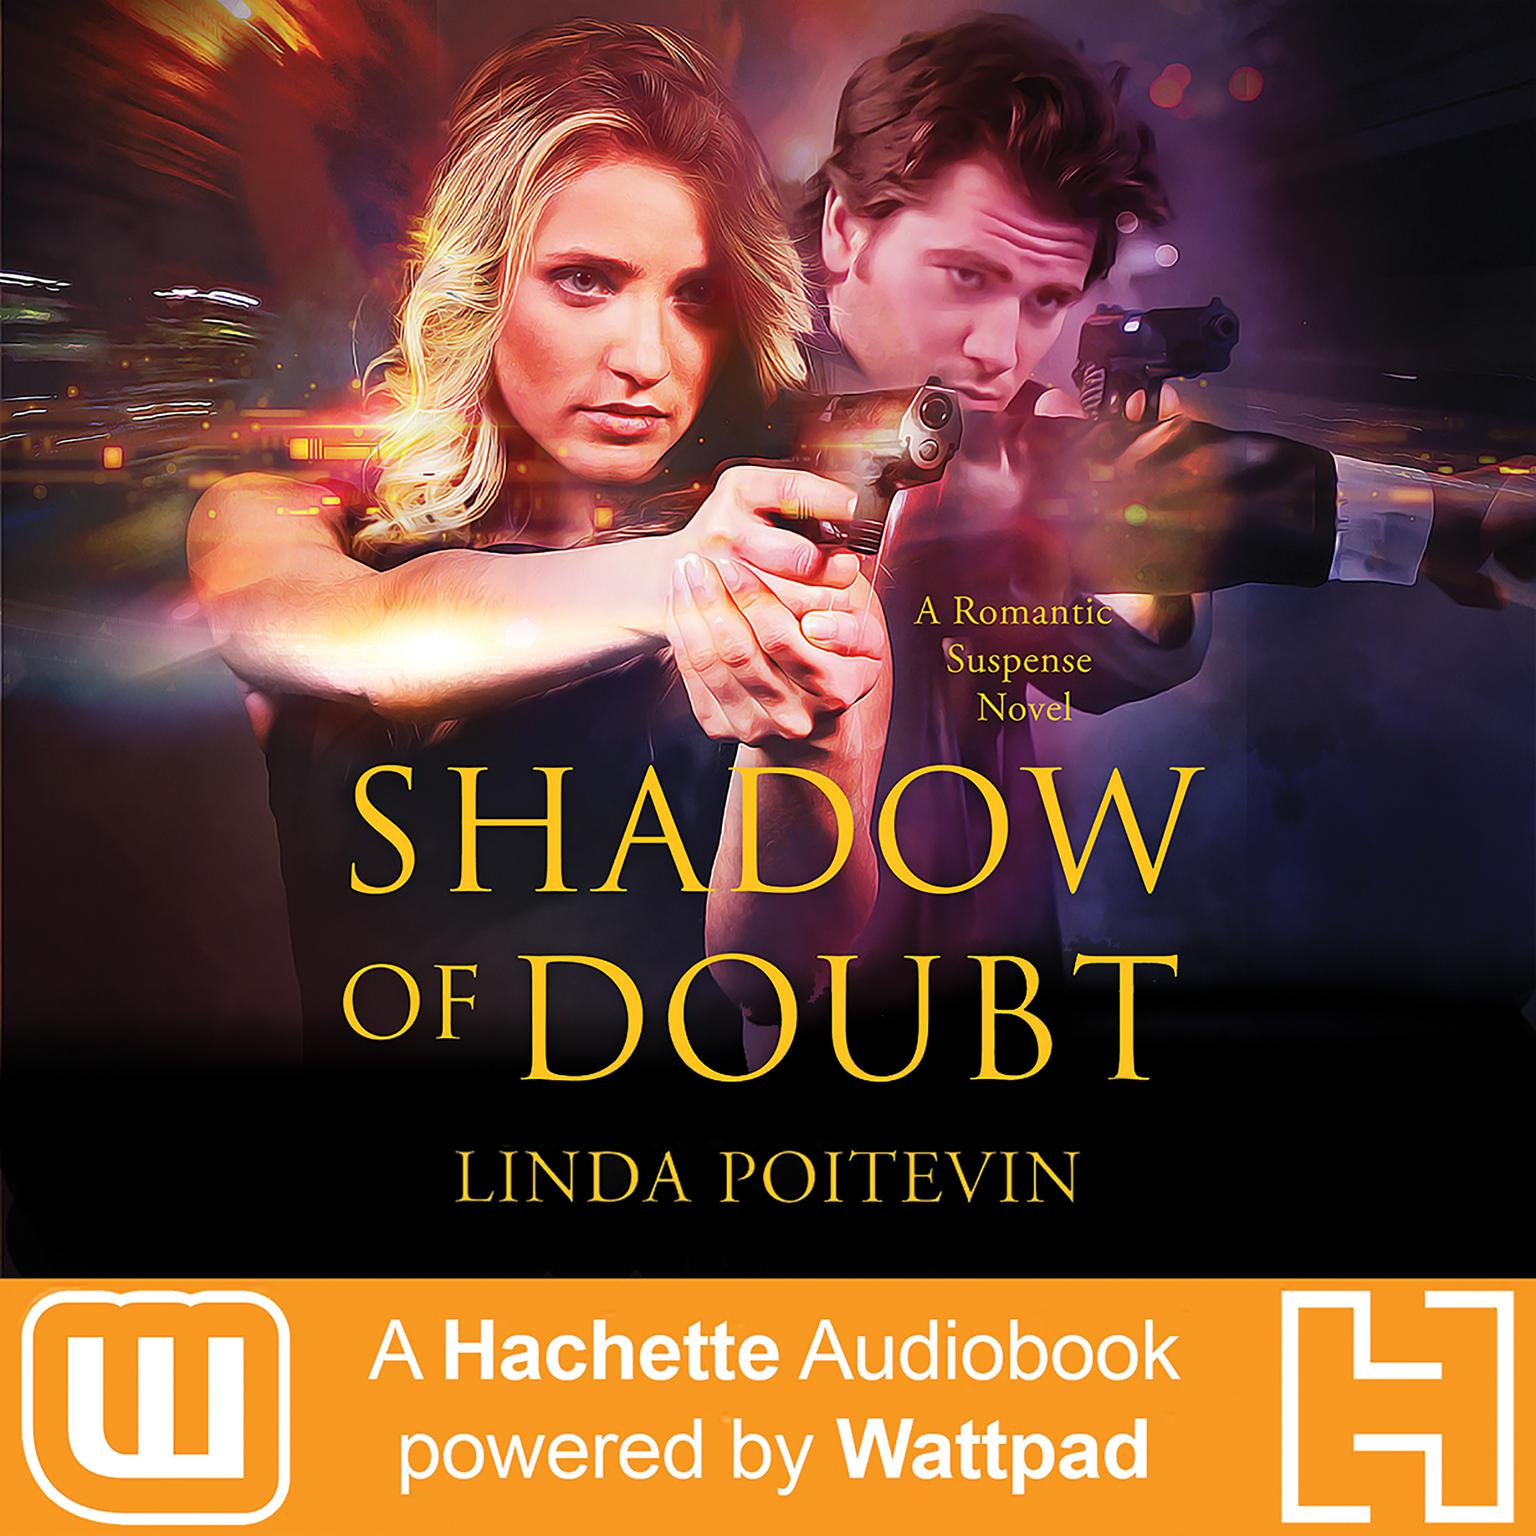 Printable Shadow of Doubt: A Hachette Audiobook powered by Wattpad Production Audiobook Cover Art